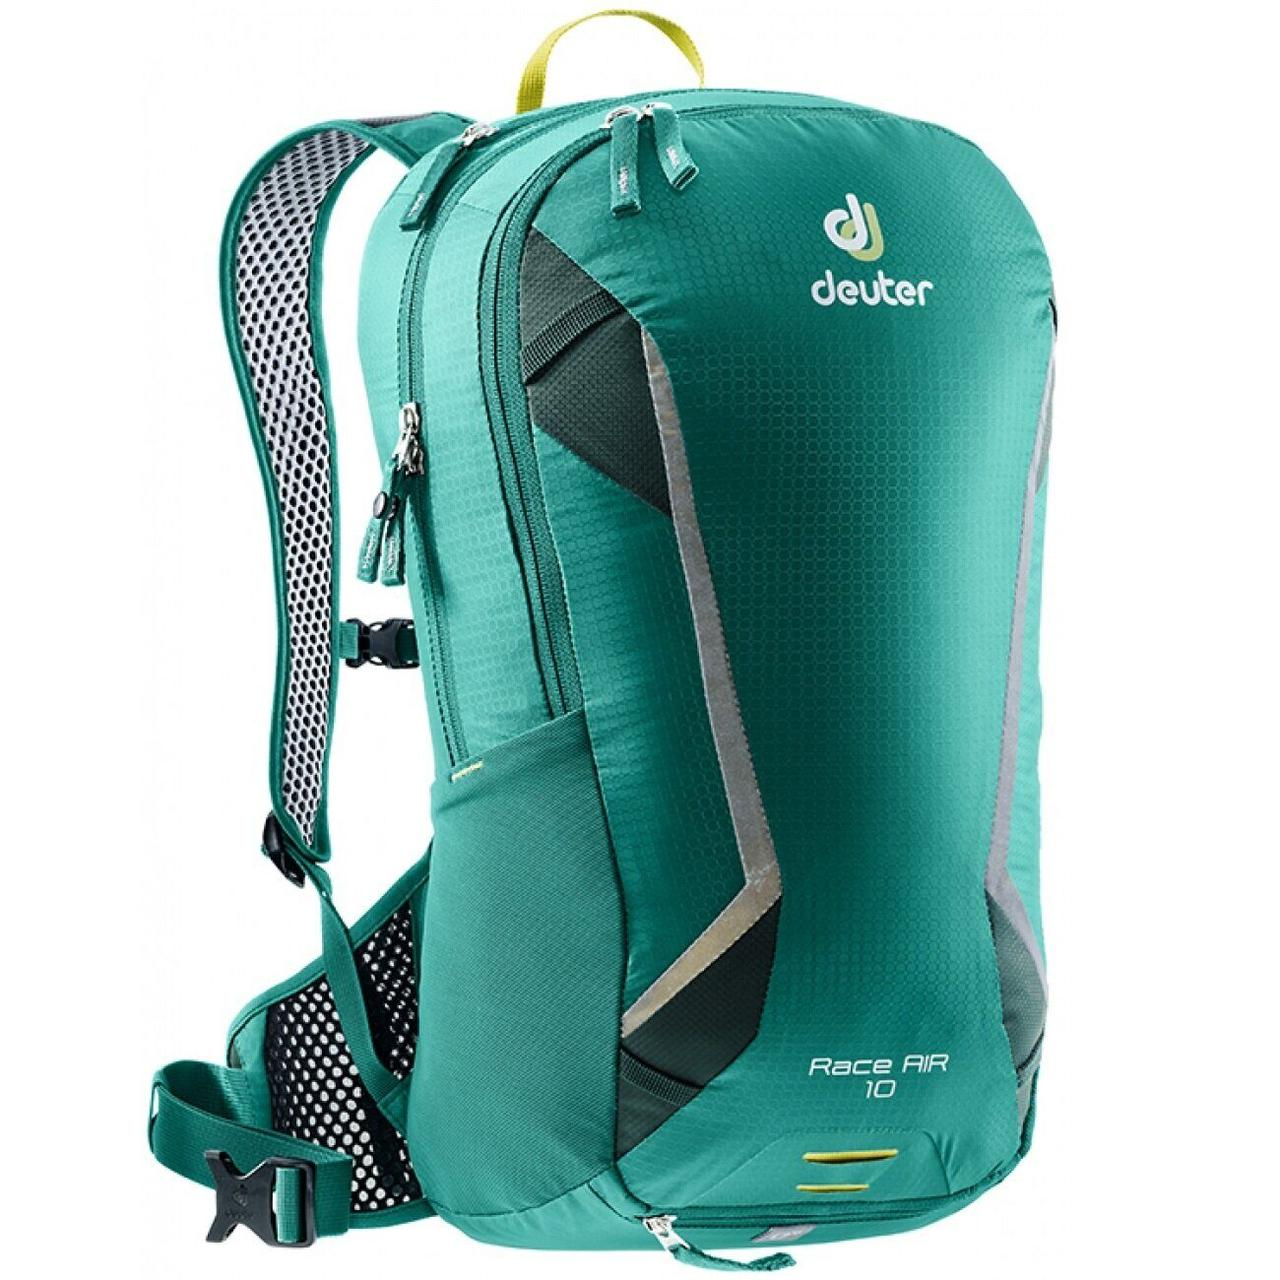 Велорюкзак Deuter Race Air 10 alpinegreen-forest (3207218 2231)